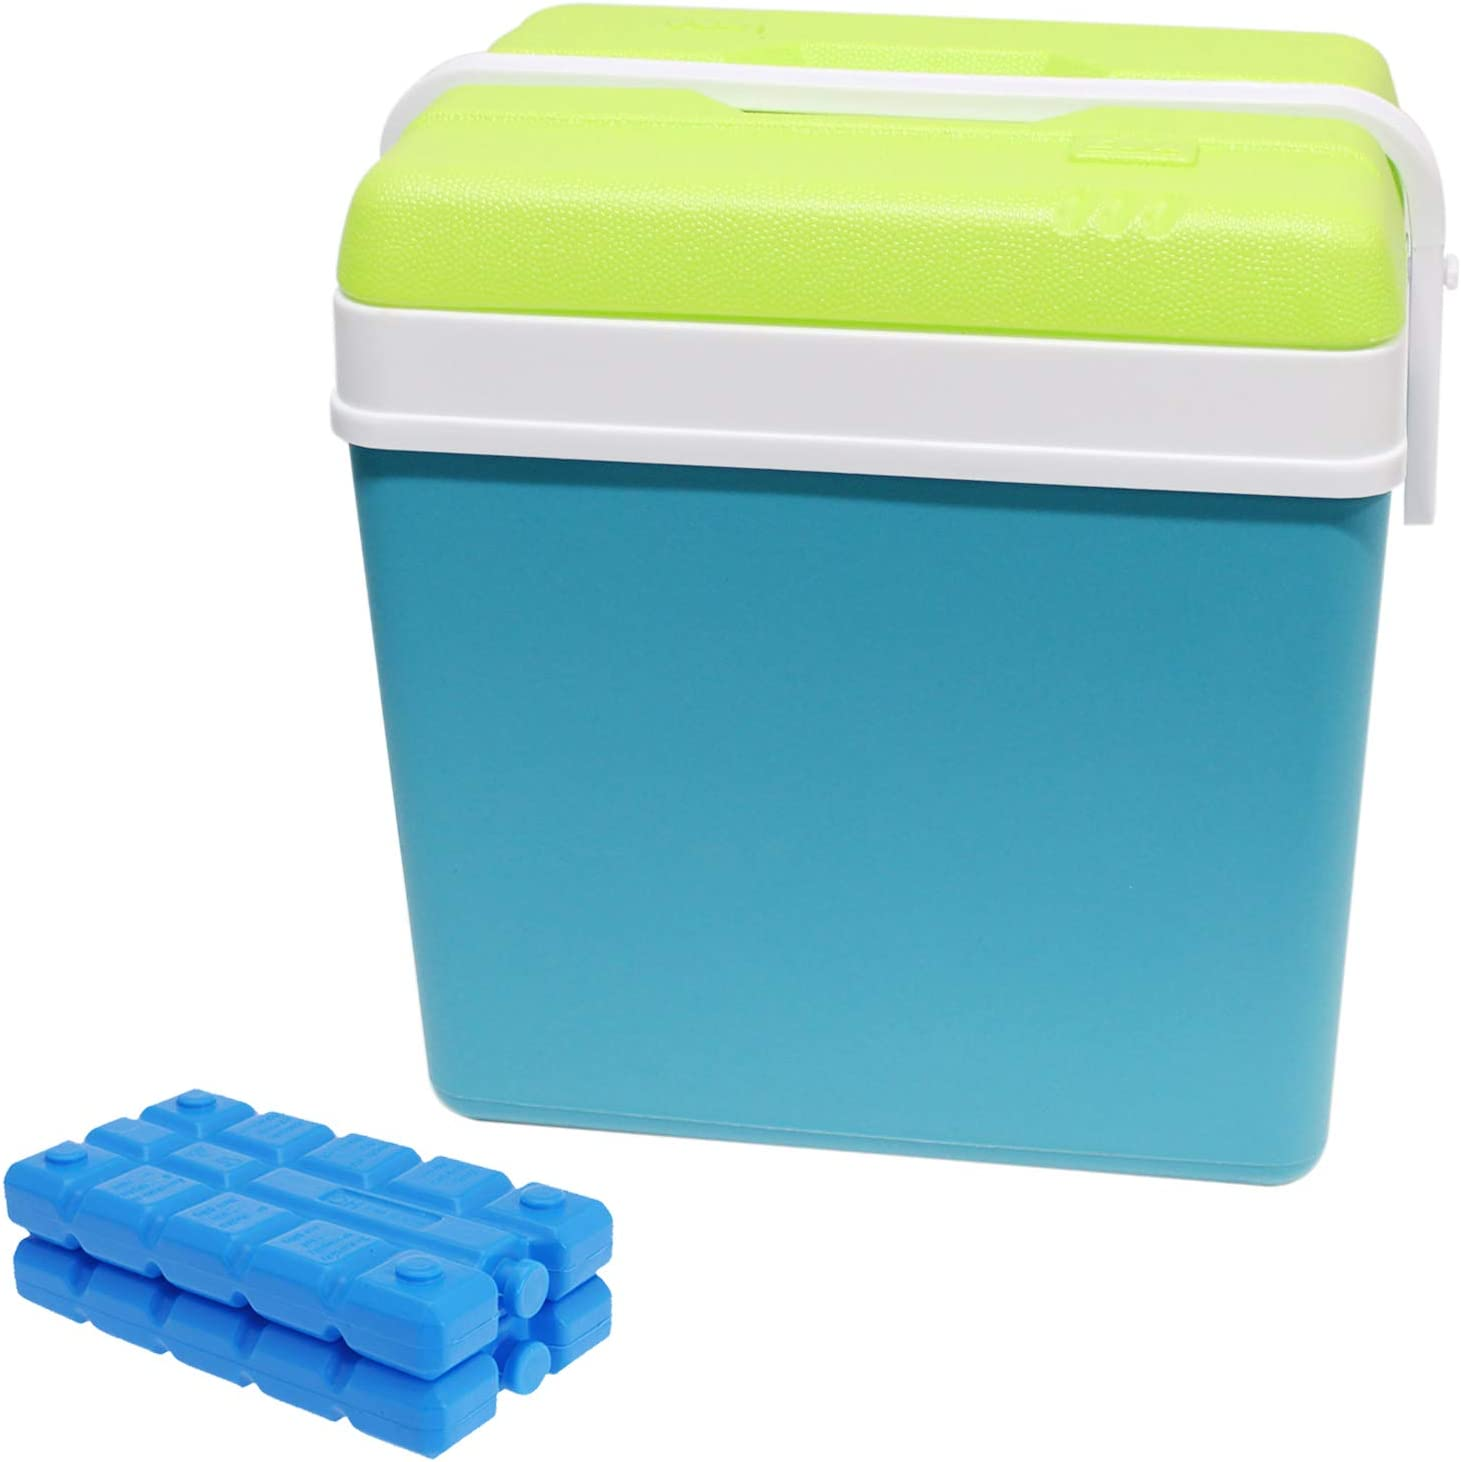 Guaranteed4Less Large 24L Insulated Cooler Box Camping Drinks Ice Festival Beach Picnic Travel